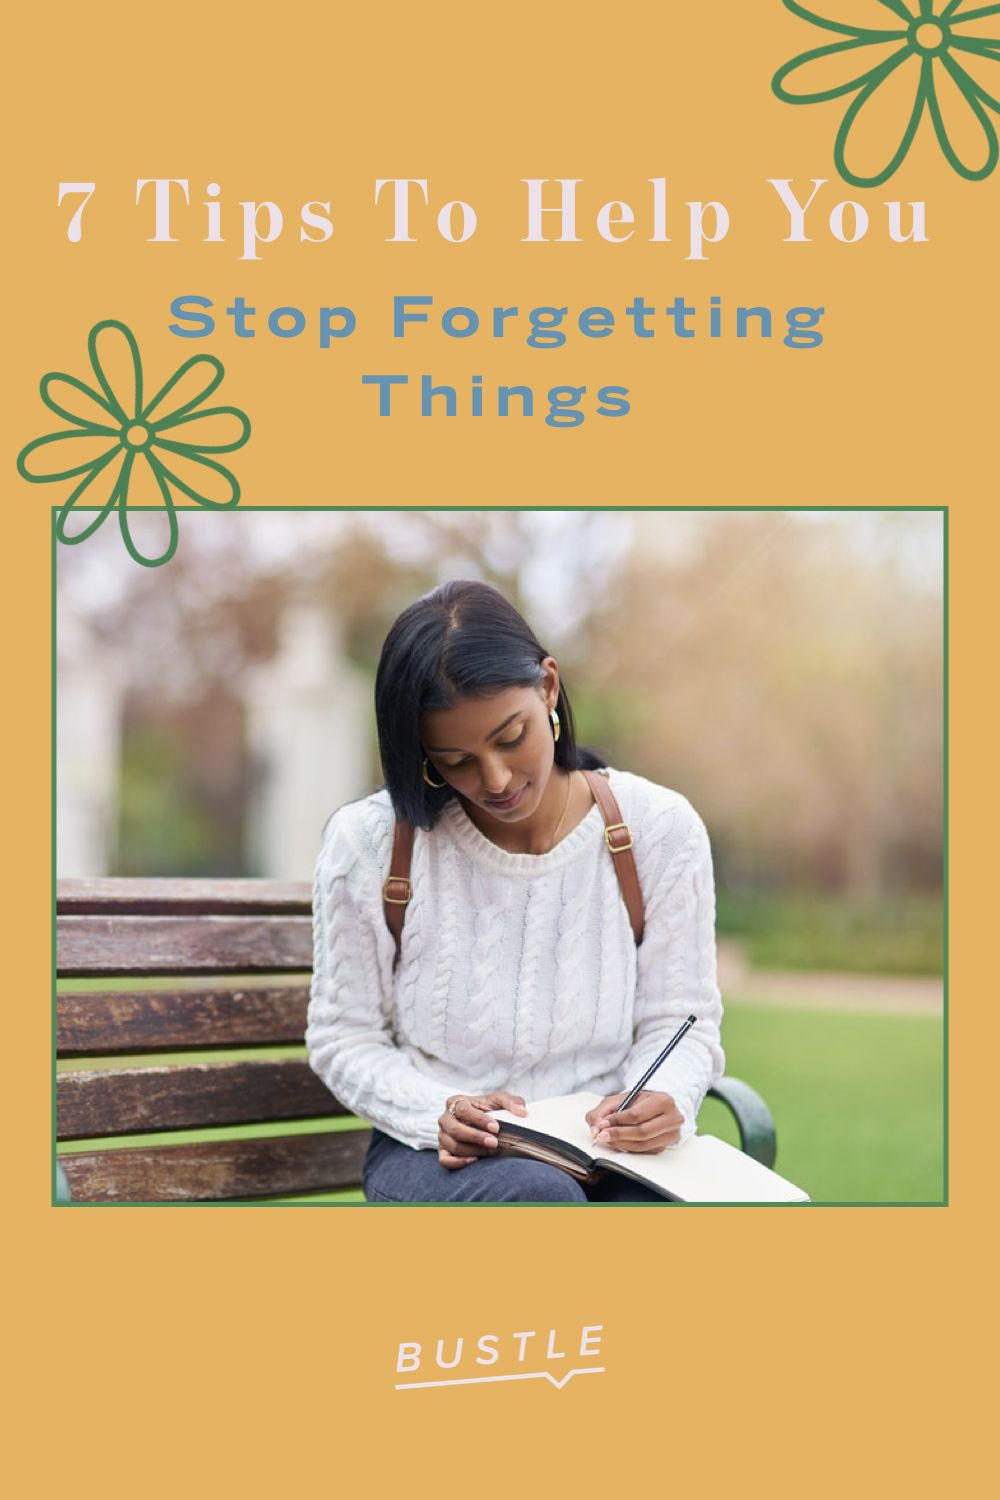 7 Tips To Help You Stop Forgetting Things